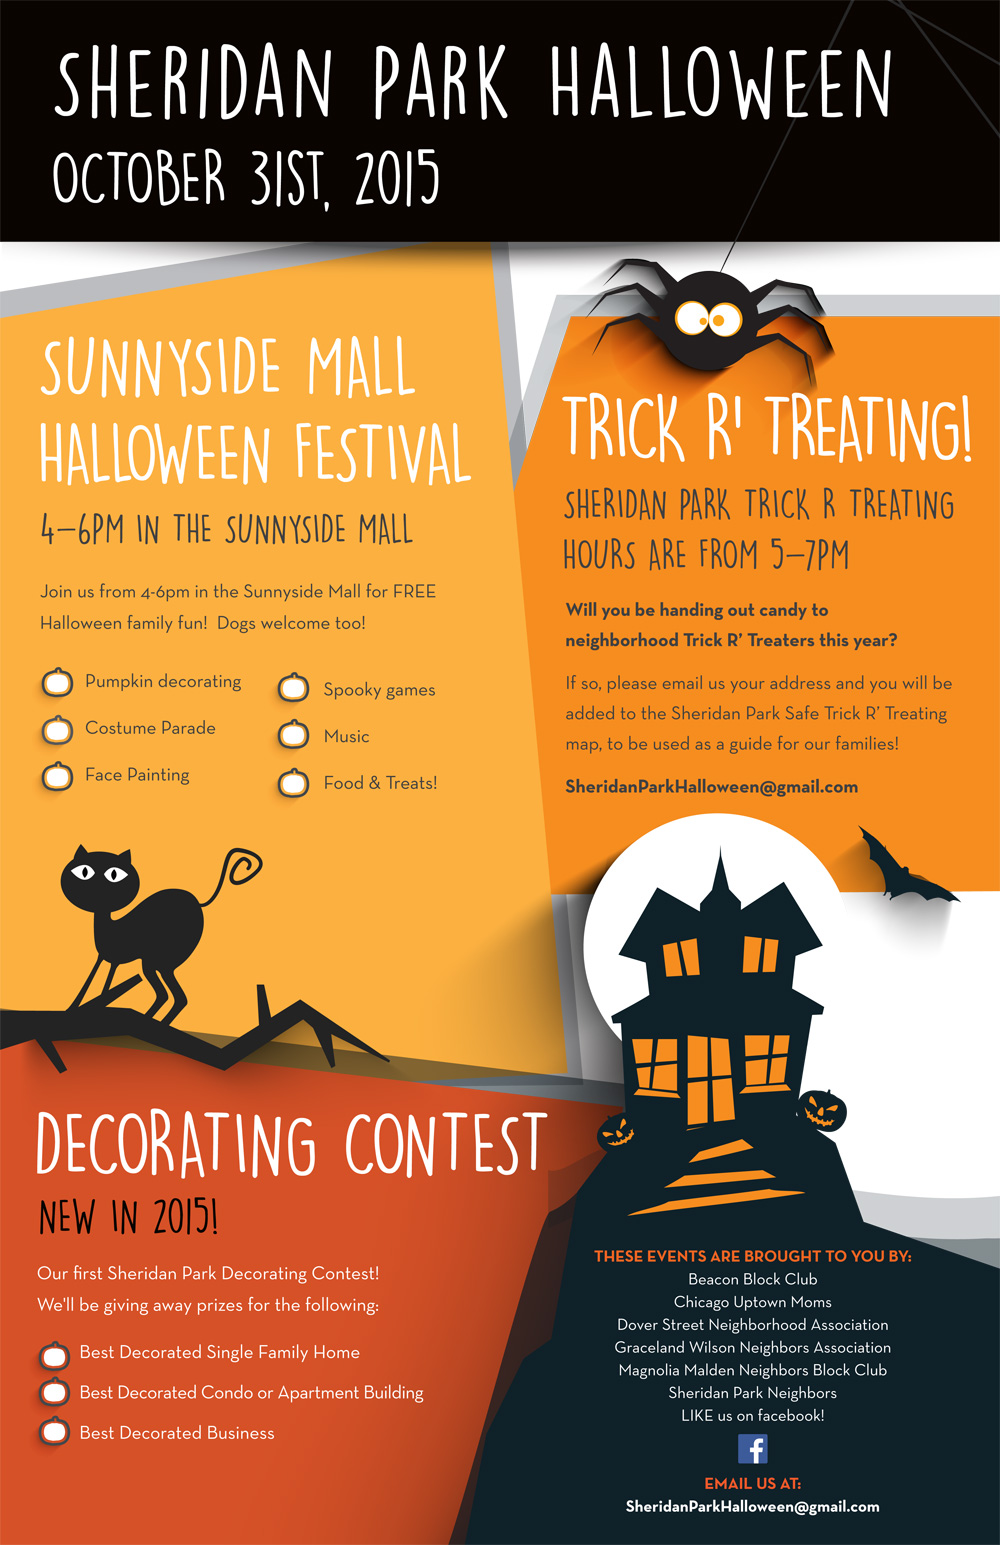 sheridan park celebrates halloween with a party on sunnyside mall a home and business decorating contest and trick or treating - Halloween Decorating Contest